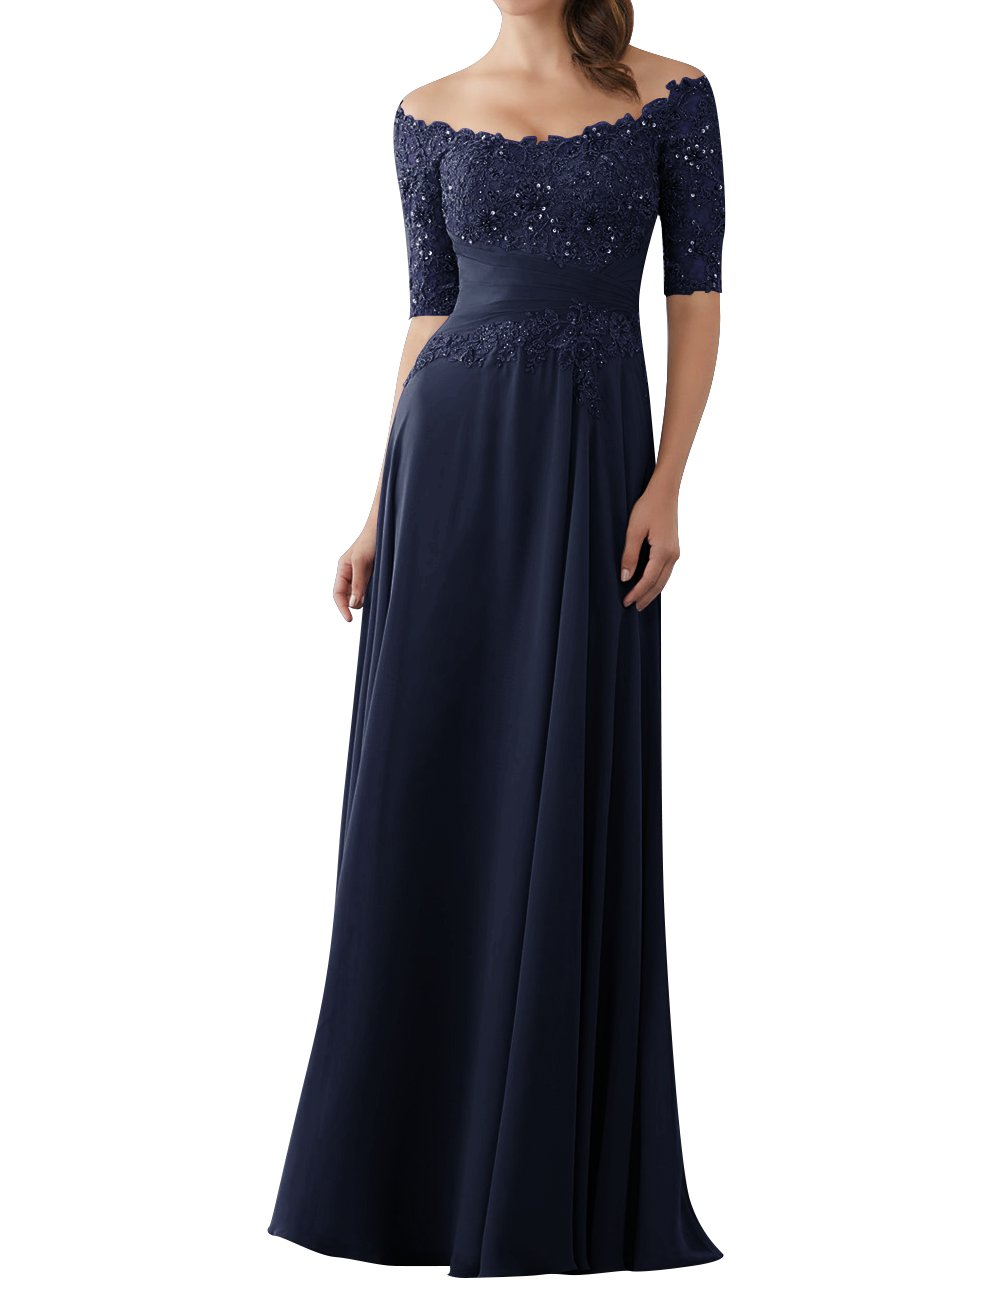 a24352b187f ... Dresses Evening Dresses Mother of The Bride Gowns with Sleeves Lace  Long Chiffon Beaded Navy Blue US16W.   